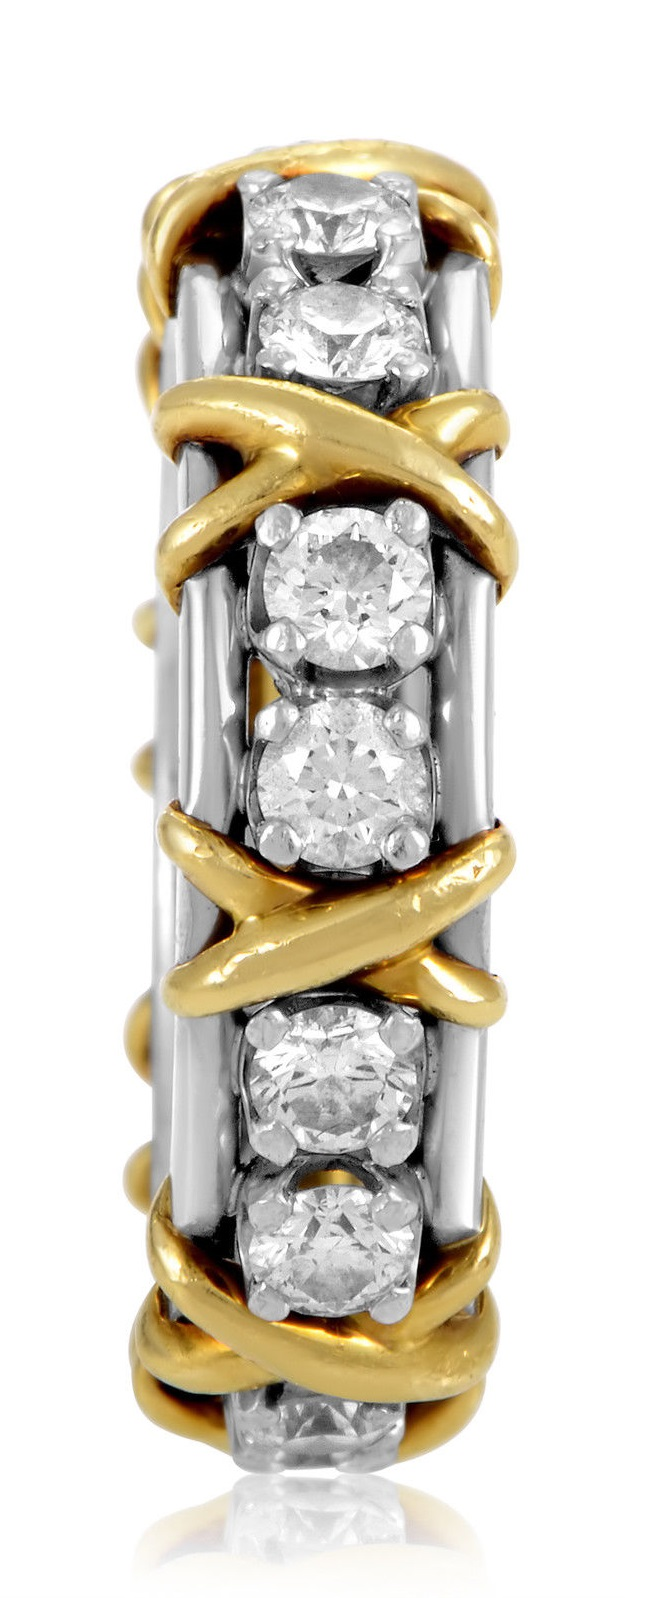 Tiffany & Co. Schlumberger Platinum & 18K Yellow Gold Diamond Eternity Band Ring